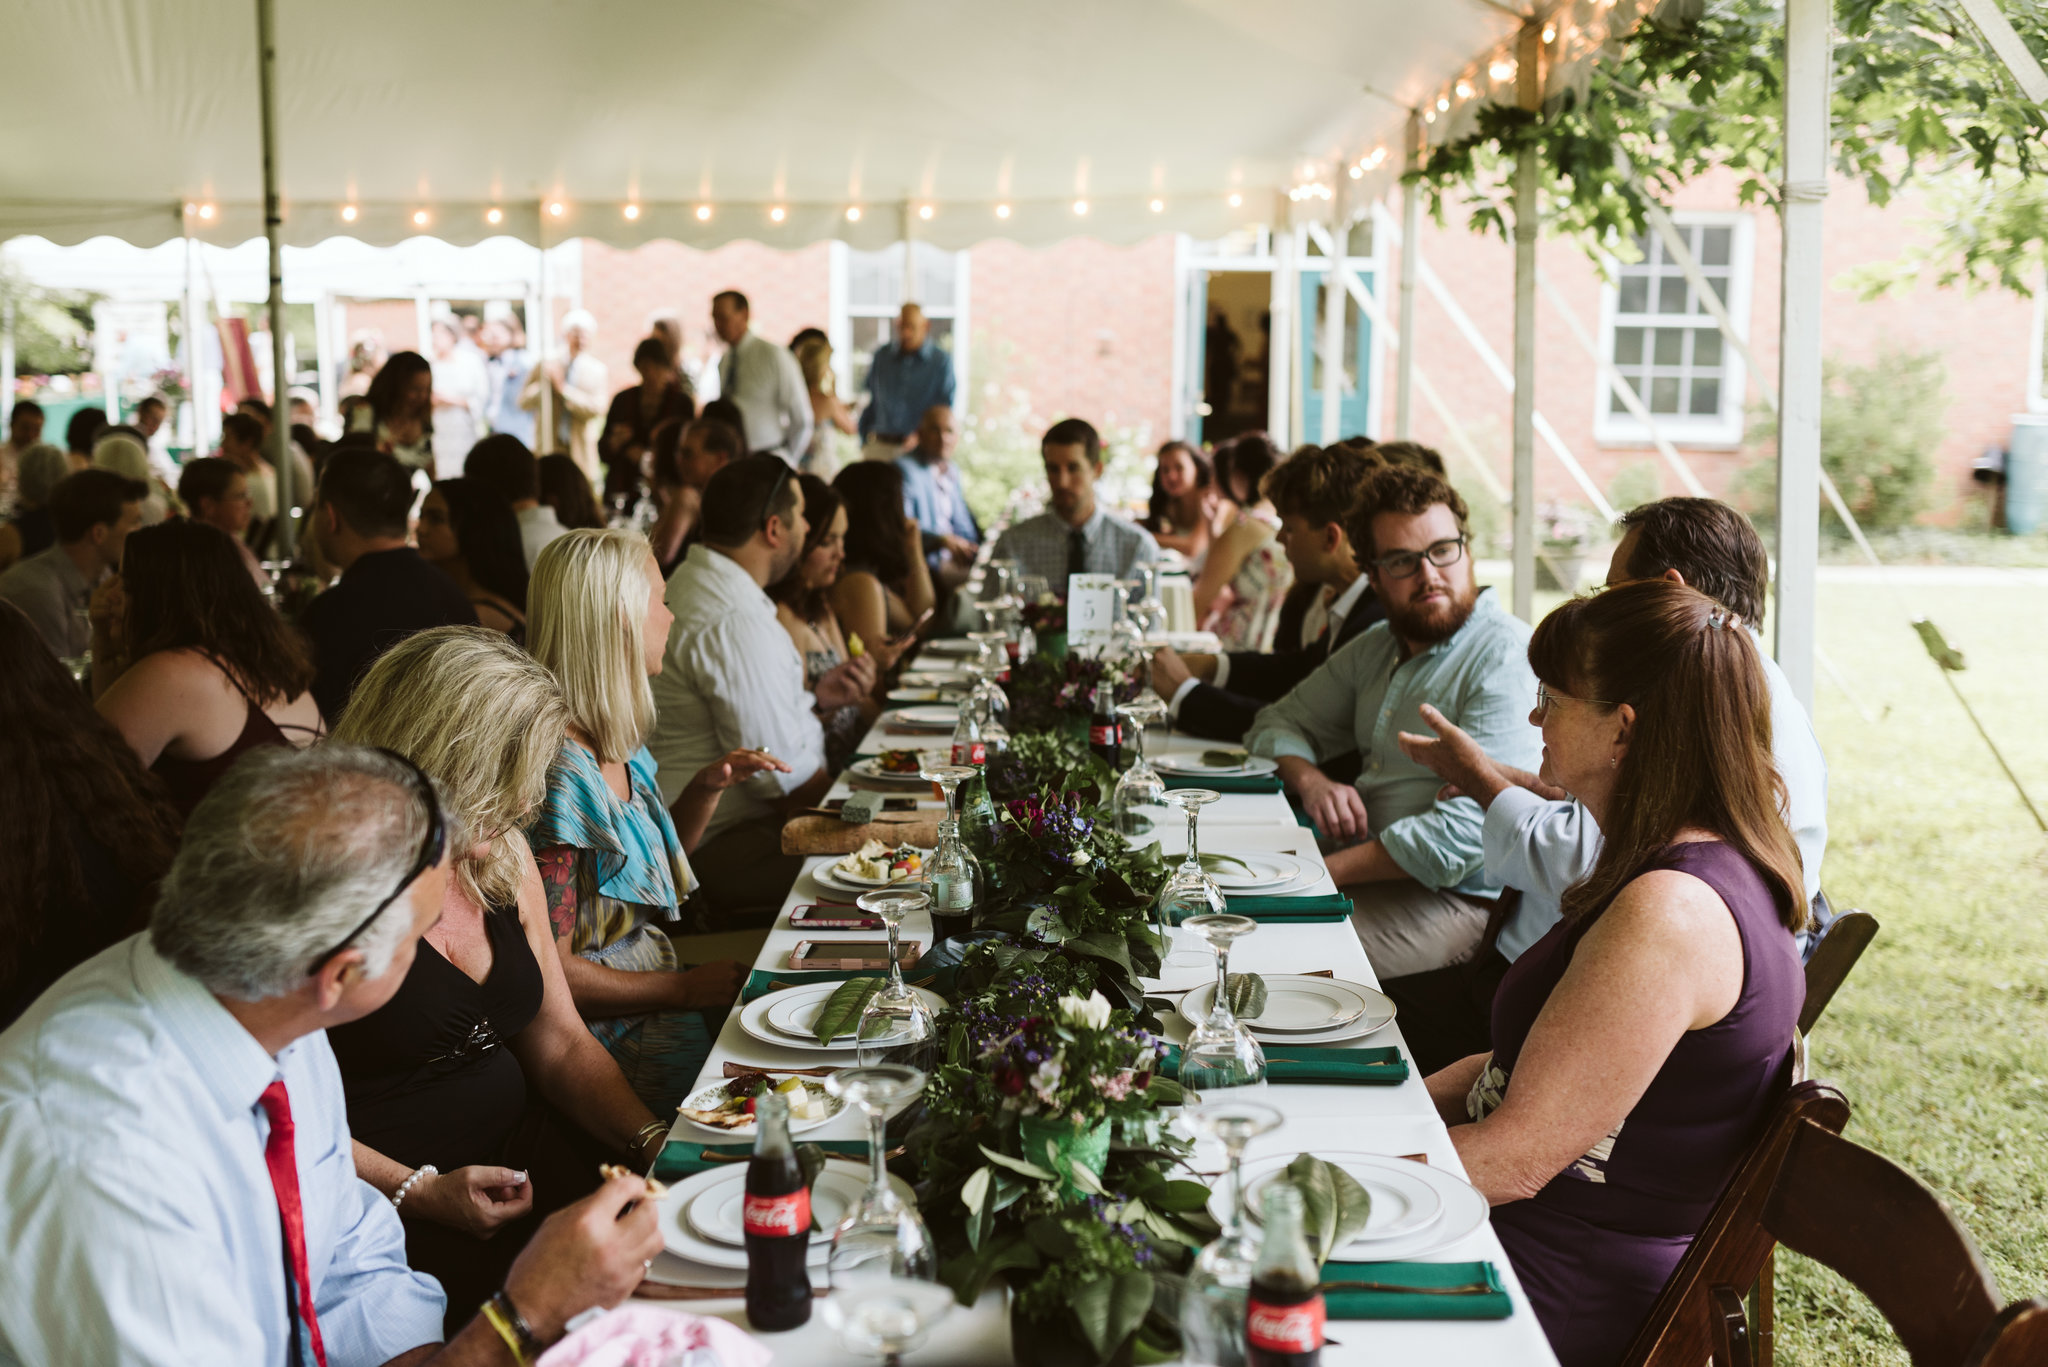 Annapolis, Quaker Wedding, Maryland Wedding Photographer, Intimate, Small Wedding, Vintage, DIY, Wedding Guests at Reception Table, Outdoor Reception